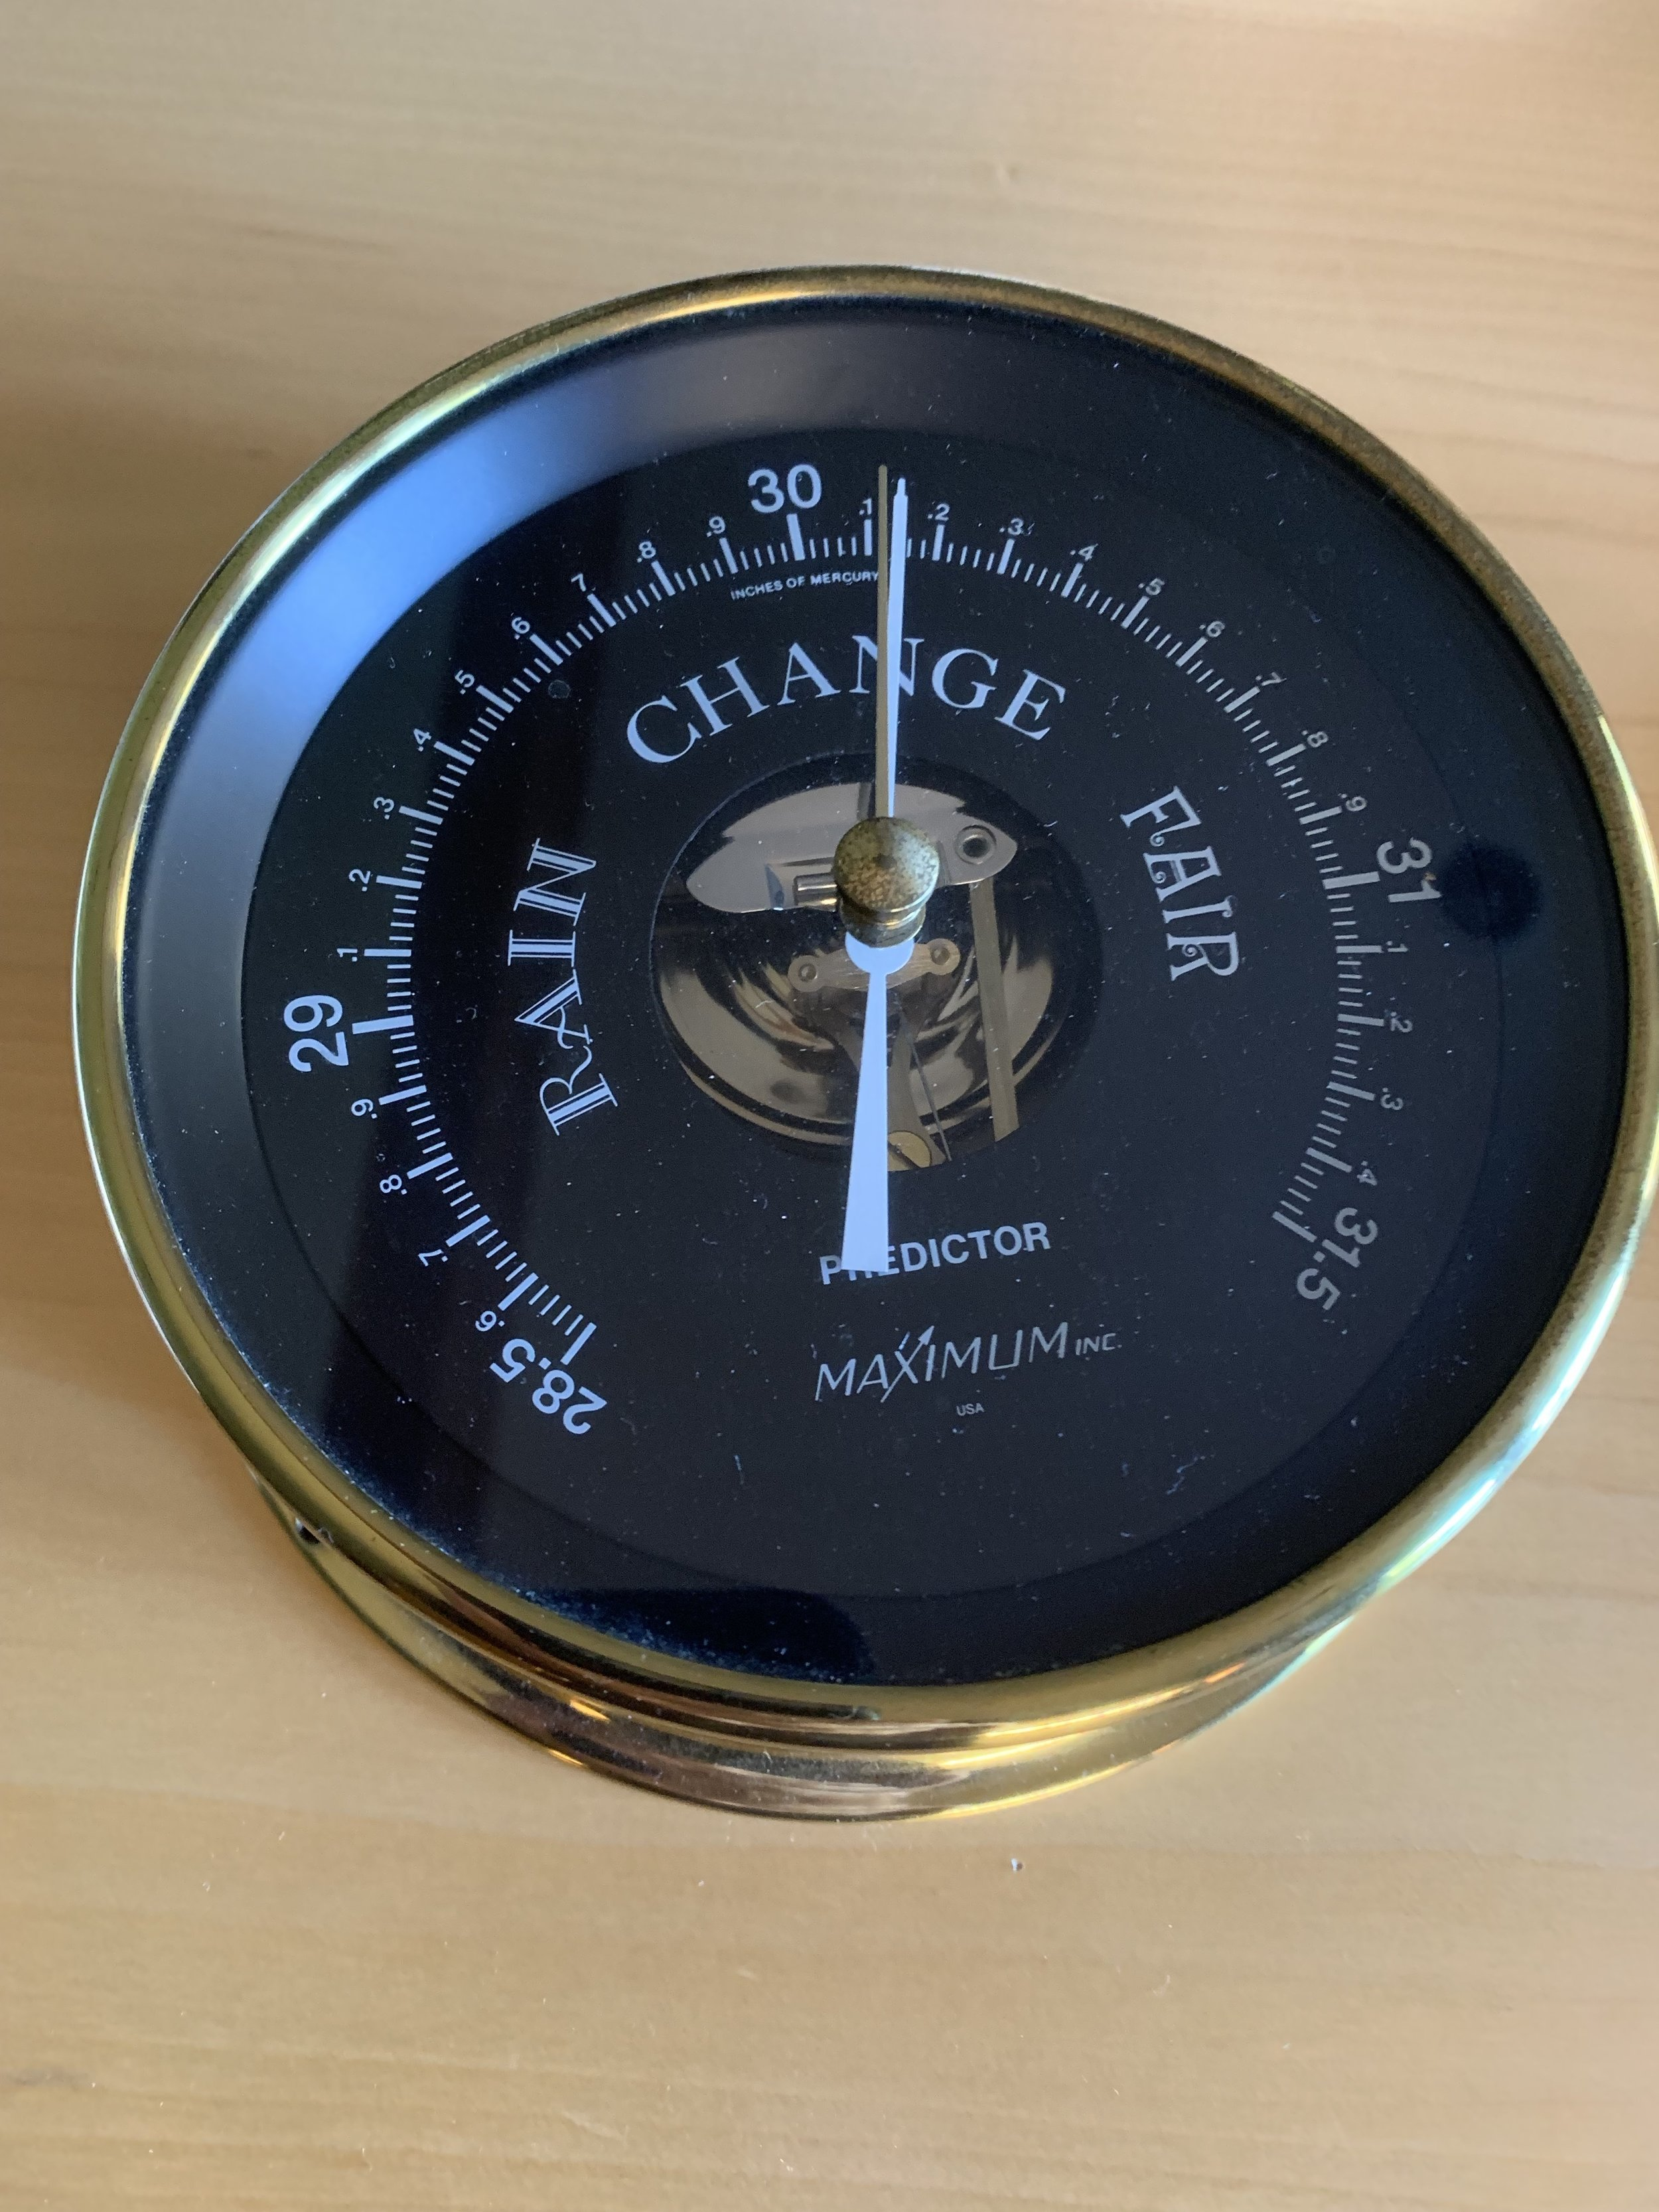 A typical Aneroid barometer…